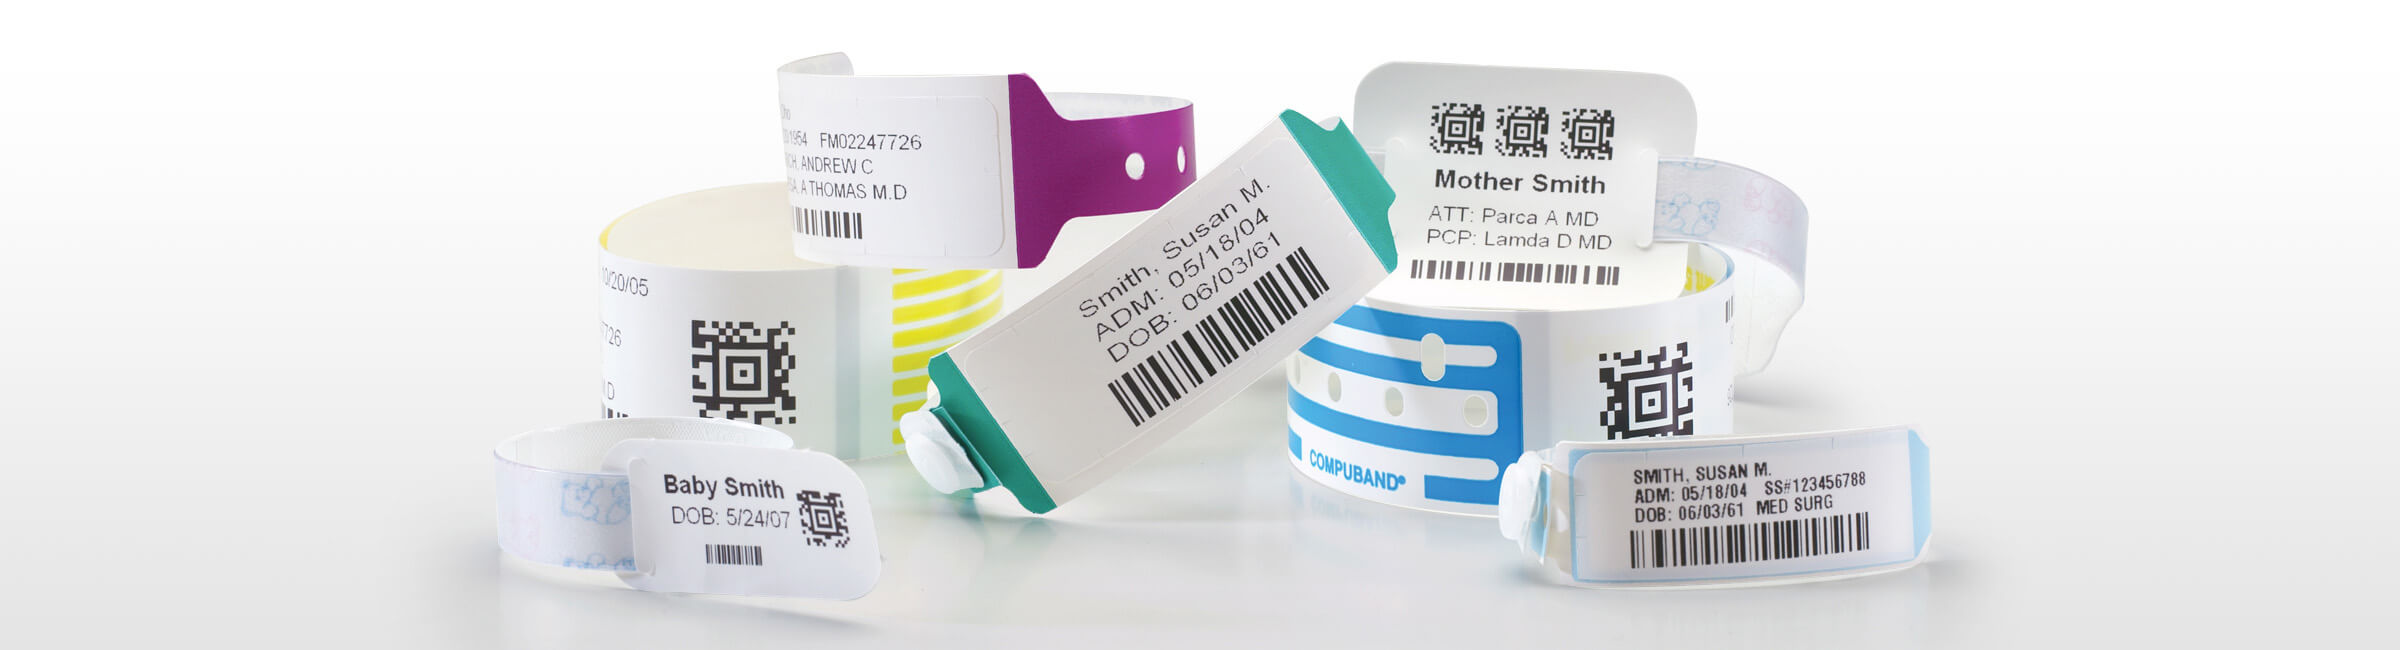 picture regarding Hospital Bracelet Printable called Clinic Bracelets Client Wristbands for Hospitals PDC